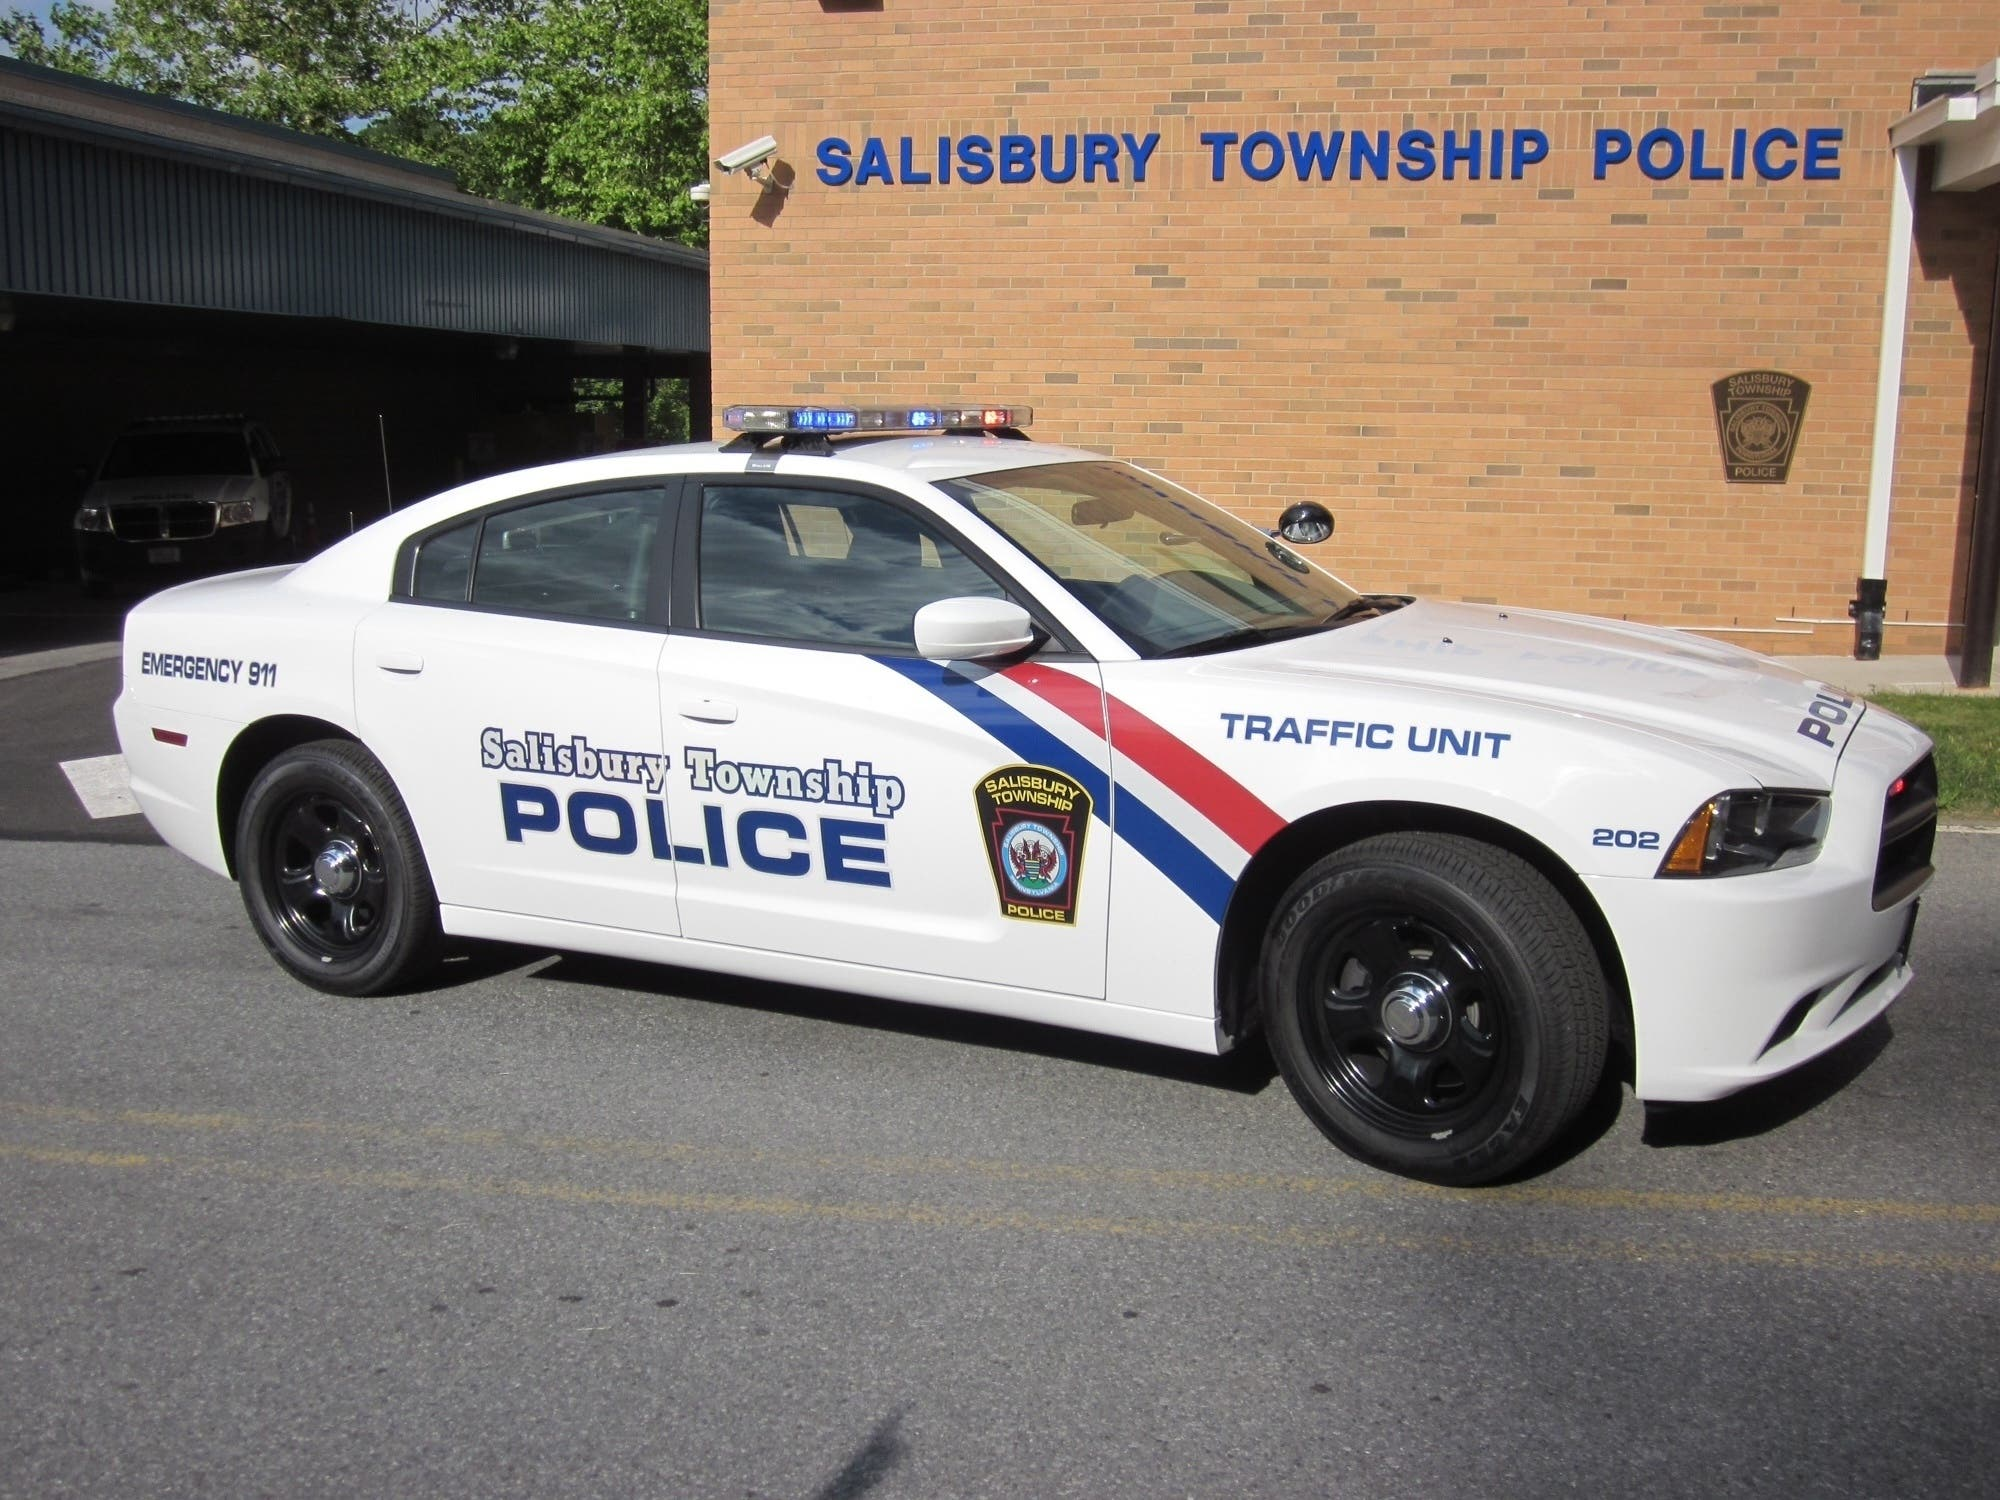 Police Cars For Sale >> Used Salisbury Police Cars For Sale Salisbury Pa Patch